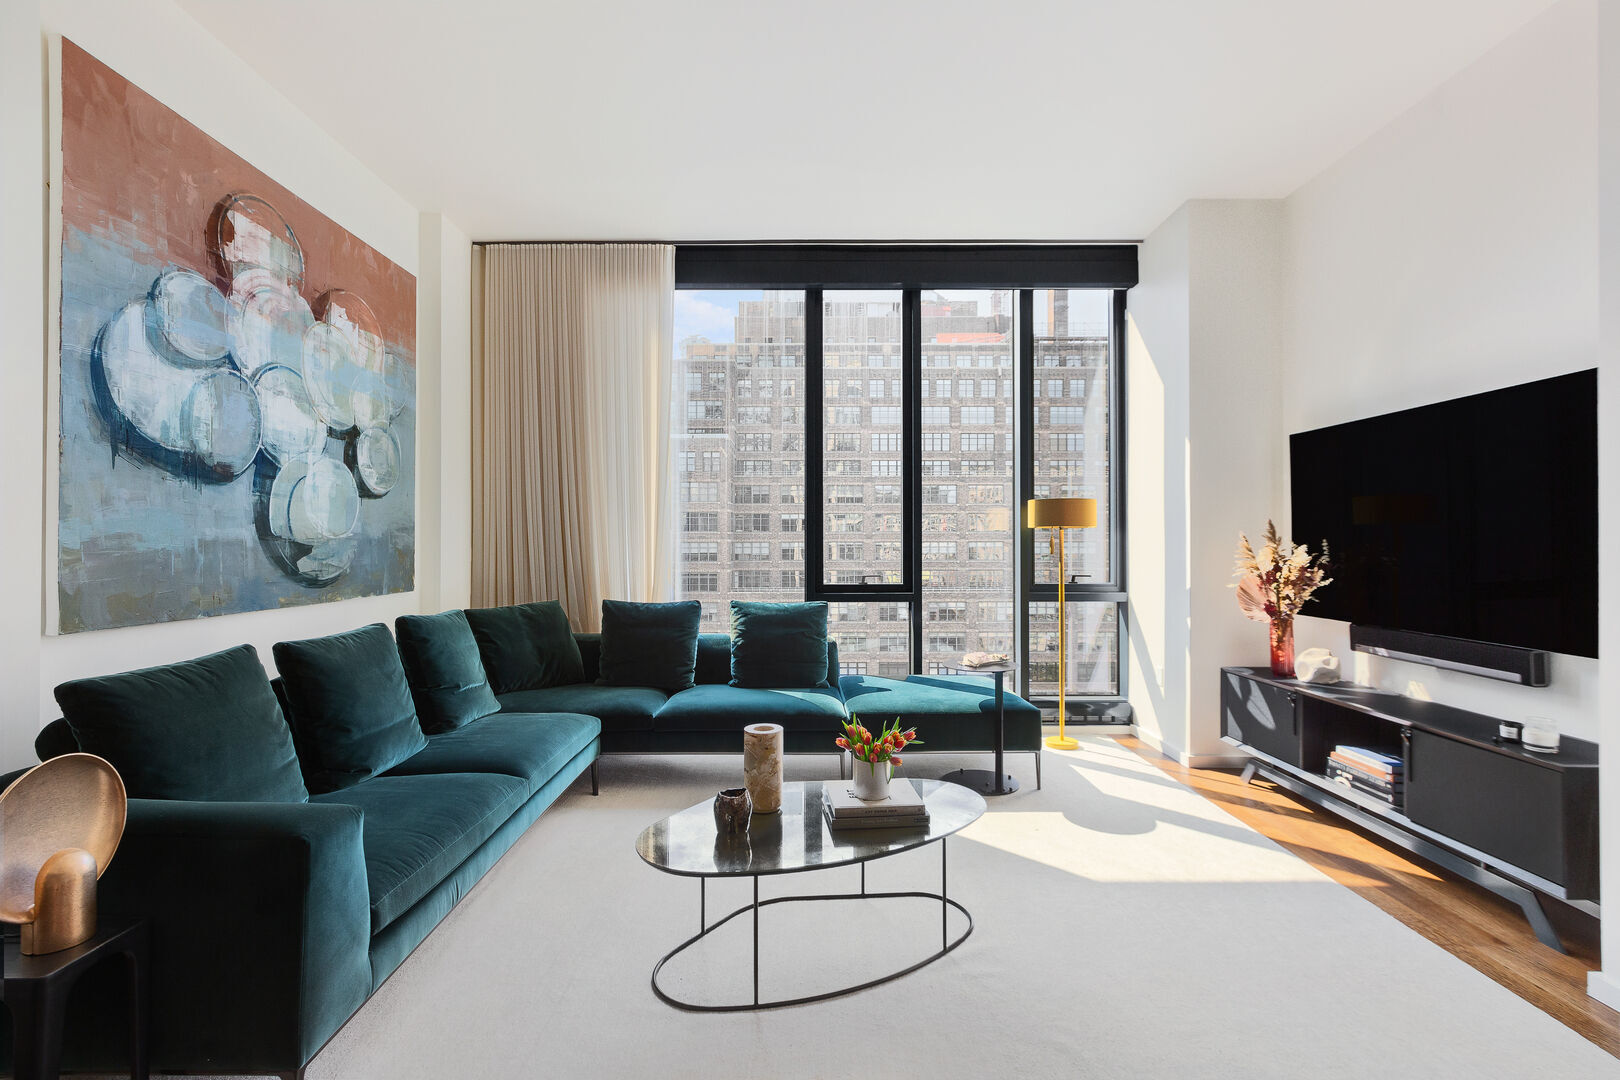 Apartment for sale at 570 Broome Street, Apt 11-B